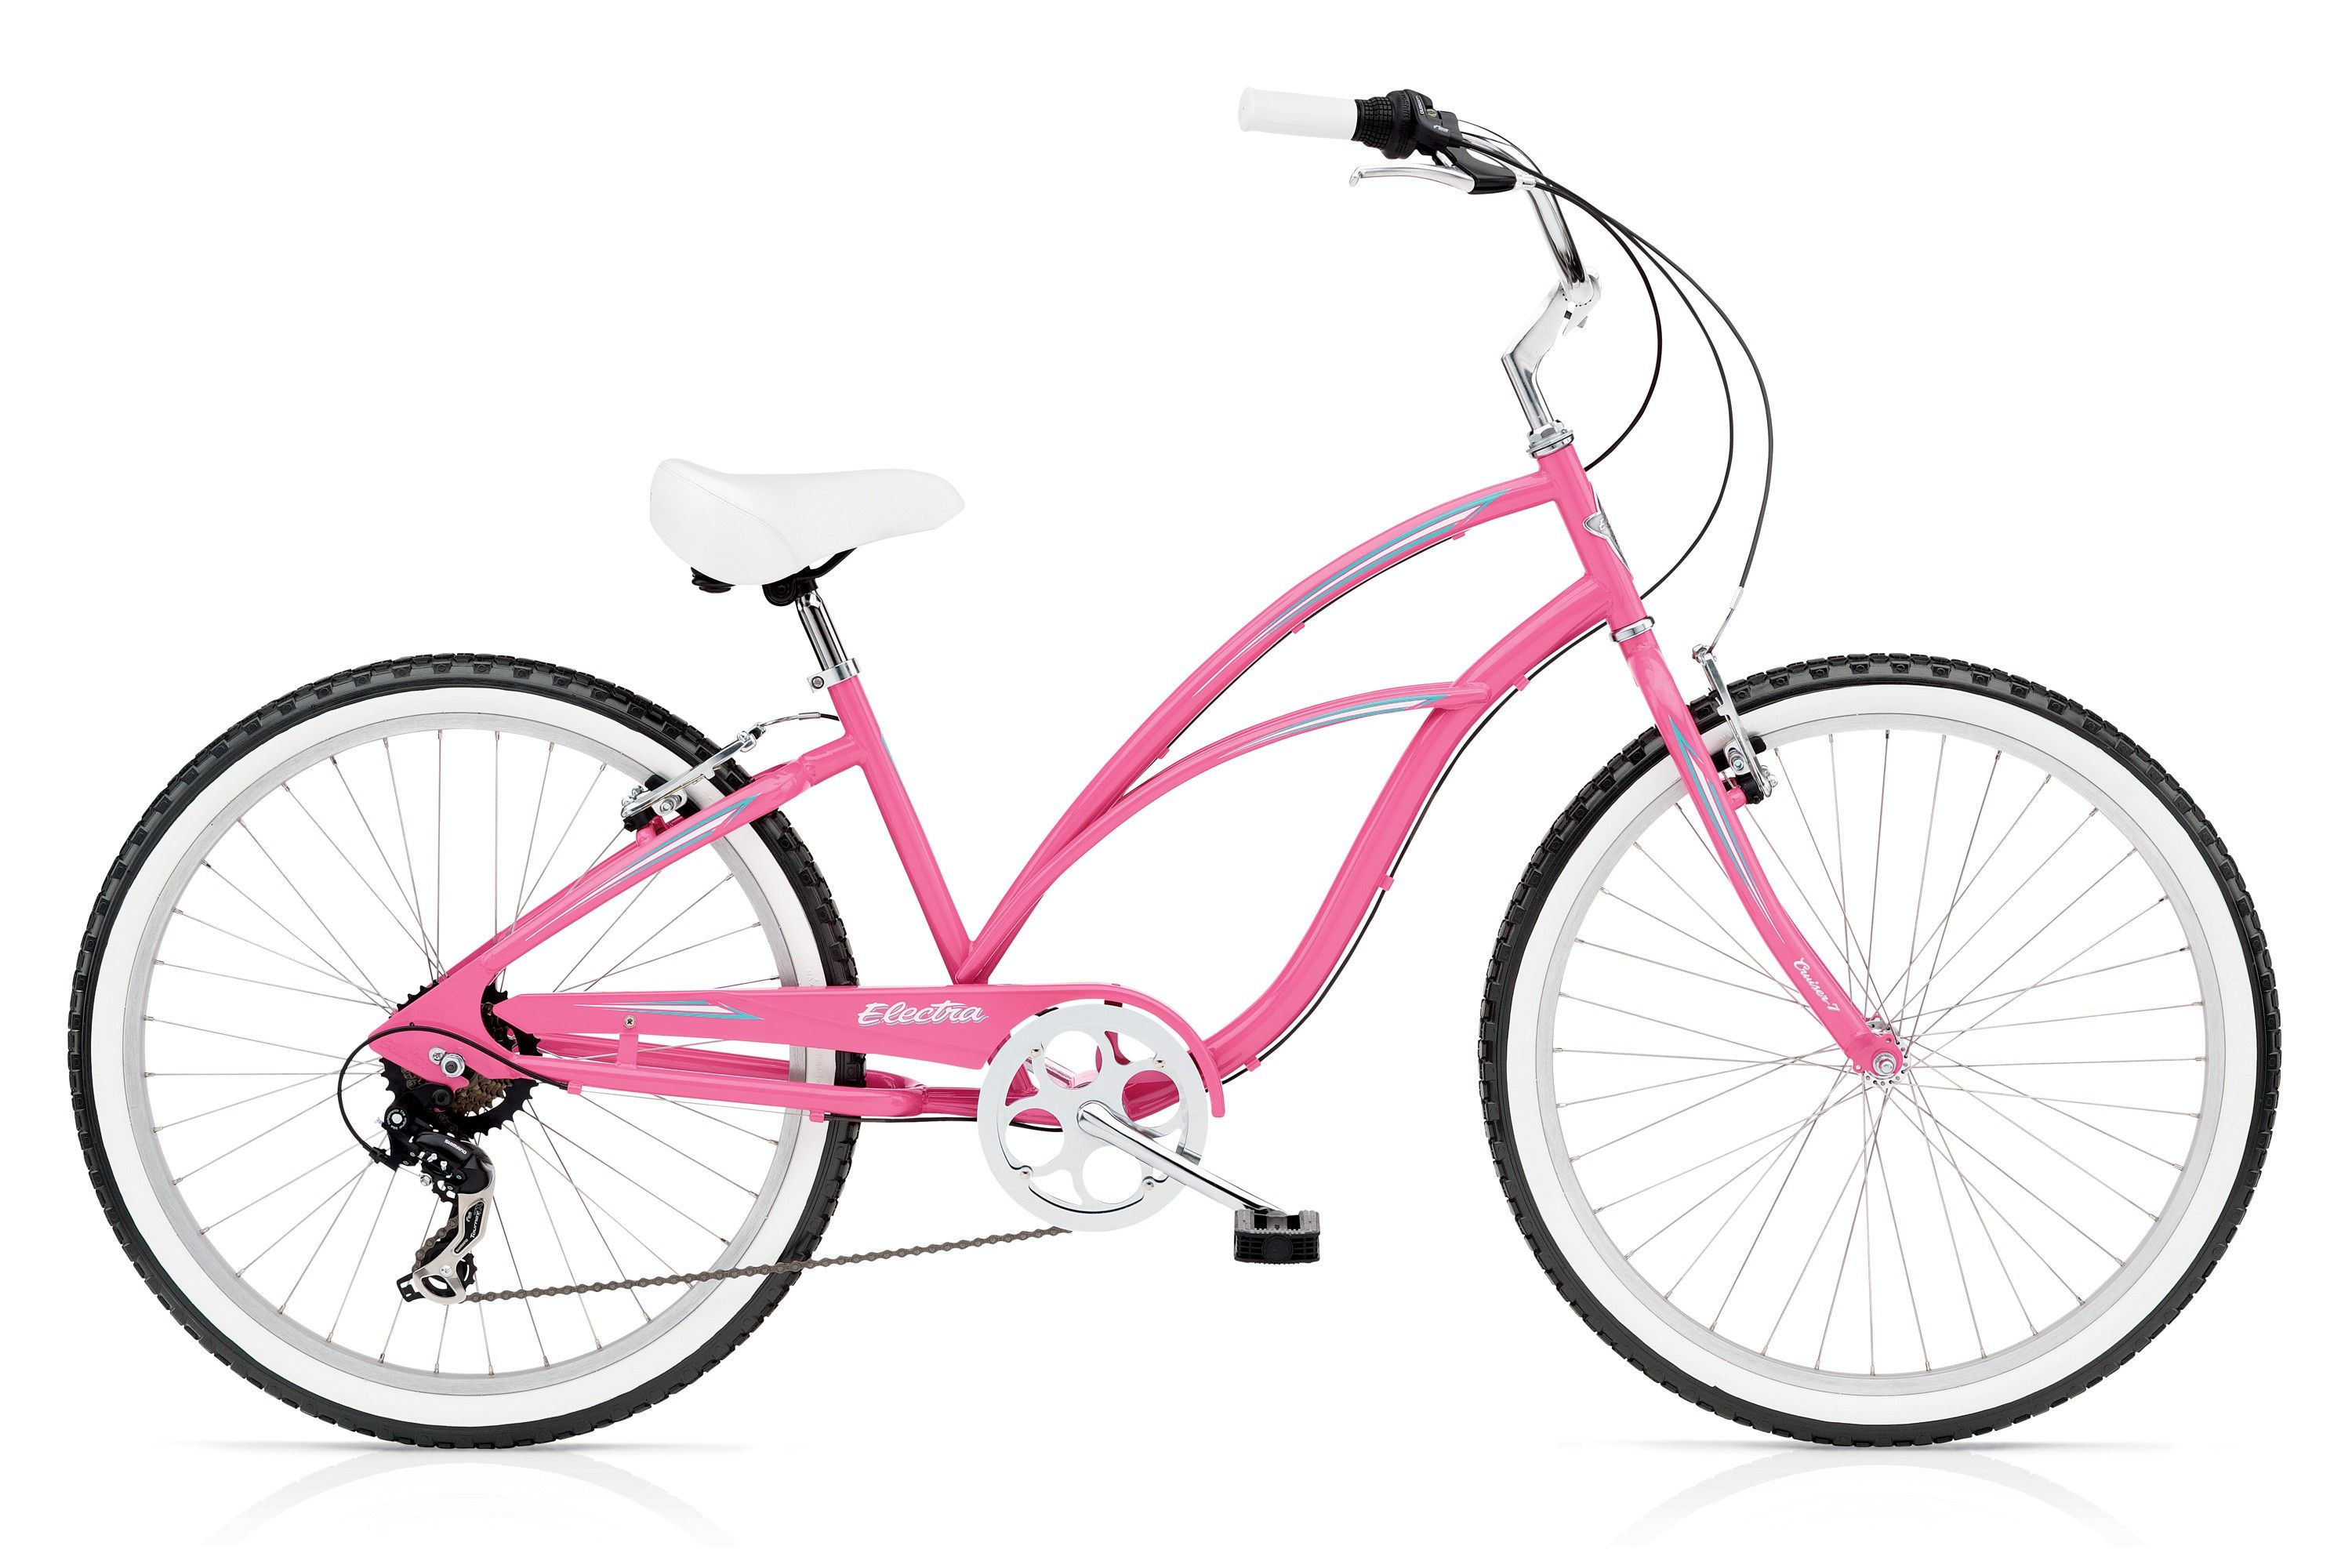 Cruiser 7d Electra Bikes Pink And Black Would Be Cool Want Pinterest Modern